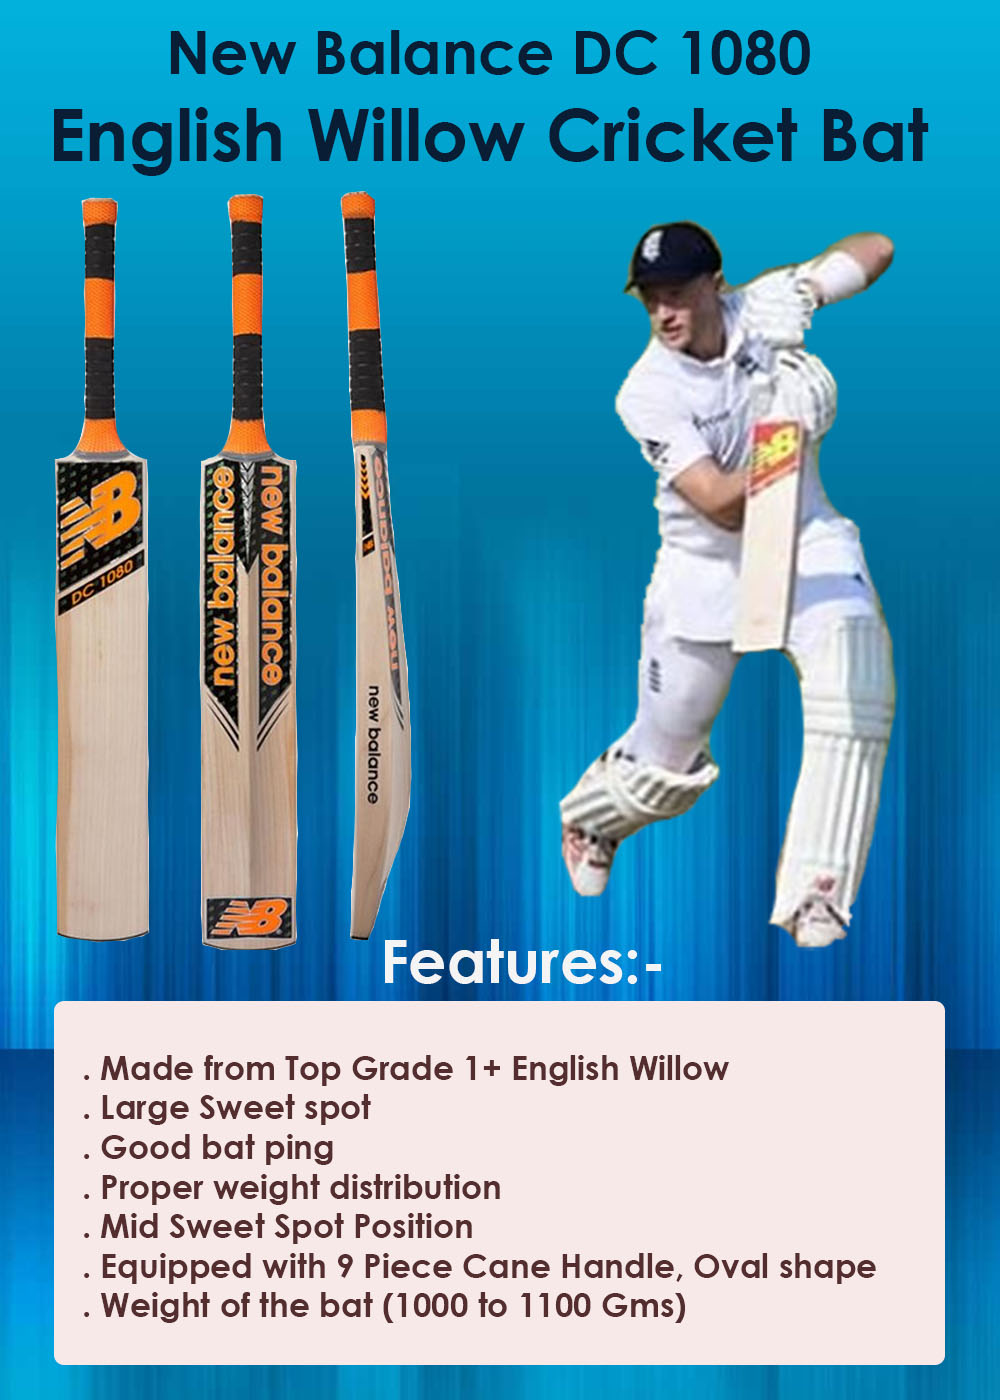 New Balance DC 1080 English Willow Cricket Bat_1